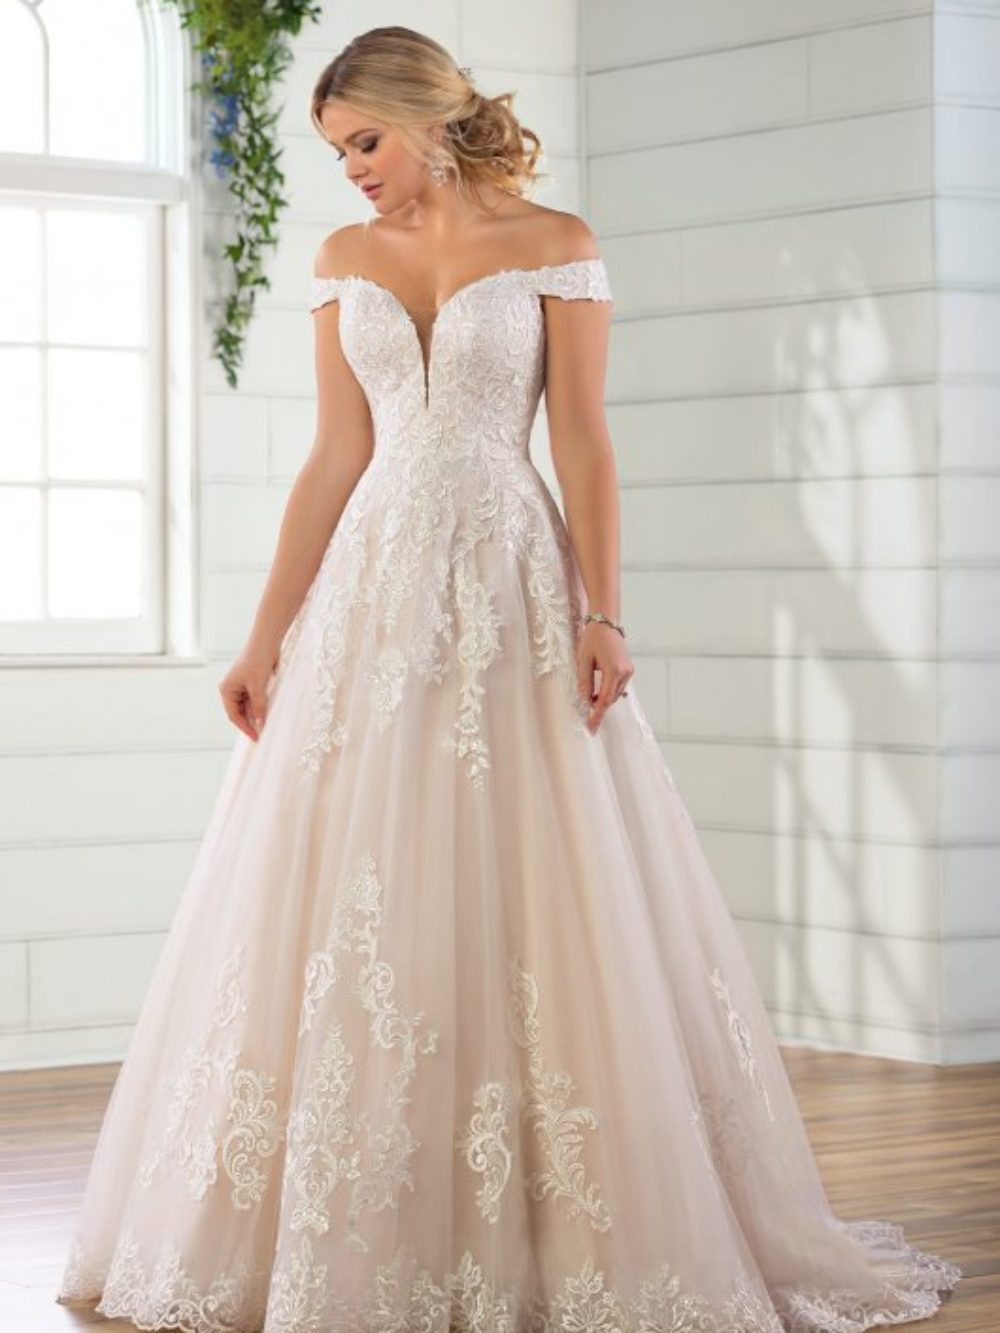 Wedding Dresses And Bridal Gowns In Boston Ma Wedding Dresses Fit Flare Wedding Dress Designer Wedding Dresses